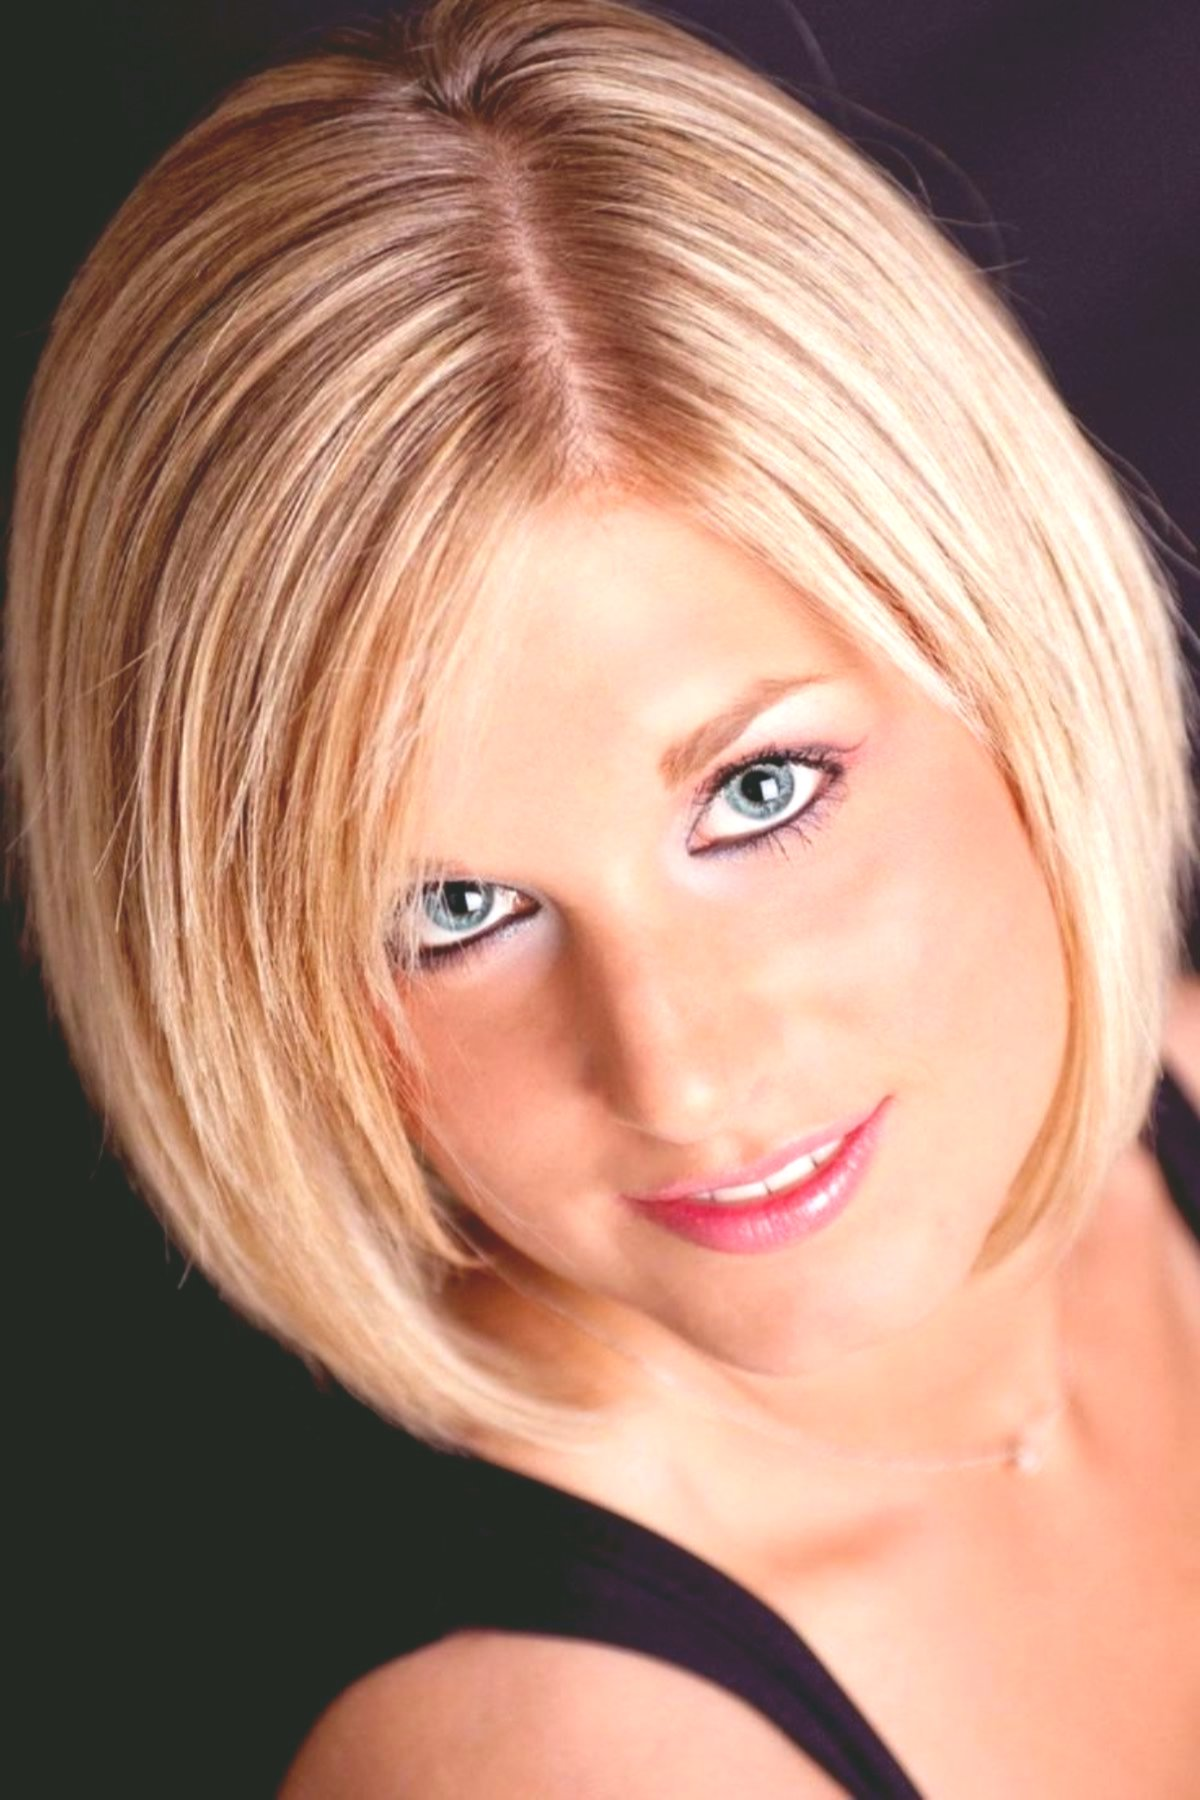 Best Bob Hairstyles Backhead View Collection - Sensational Bob Hairstyles Back Head View Architecture